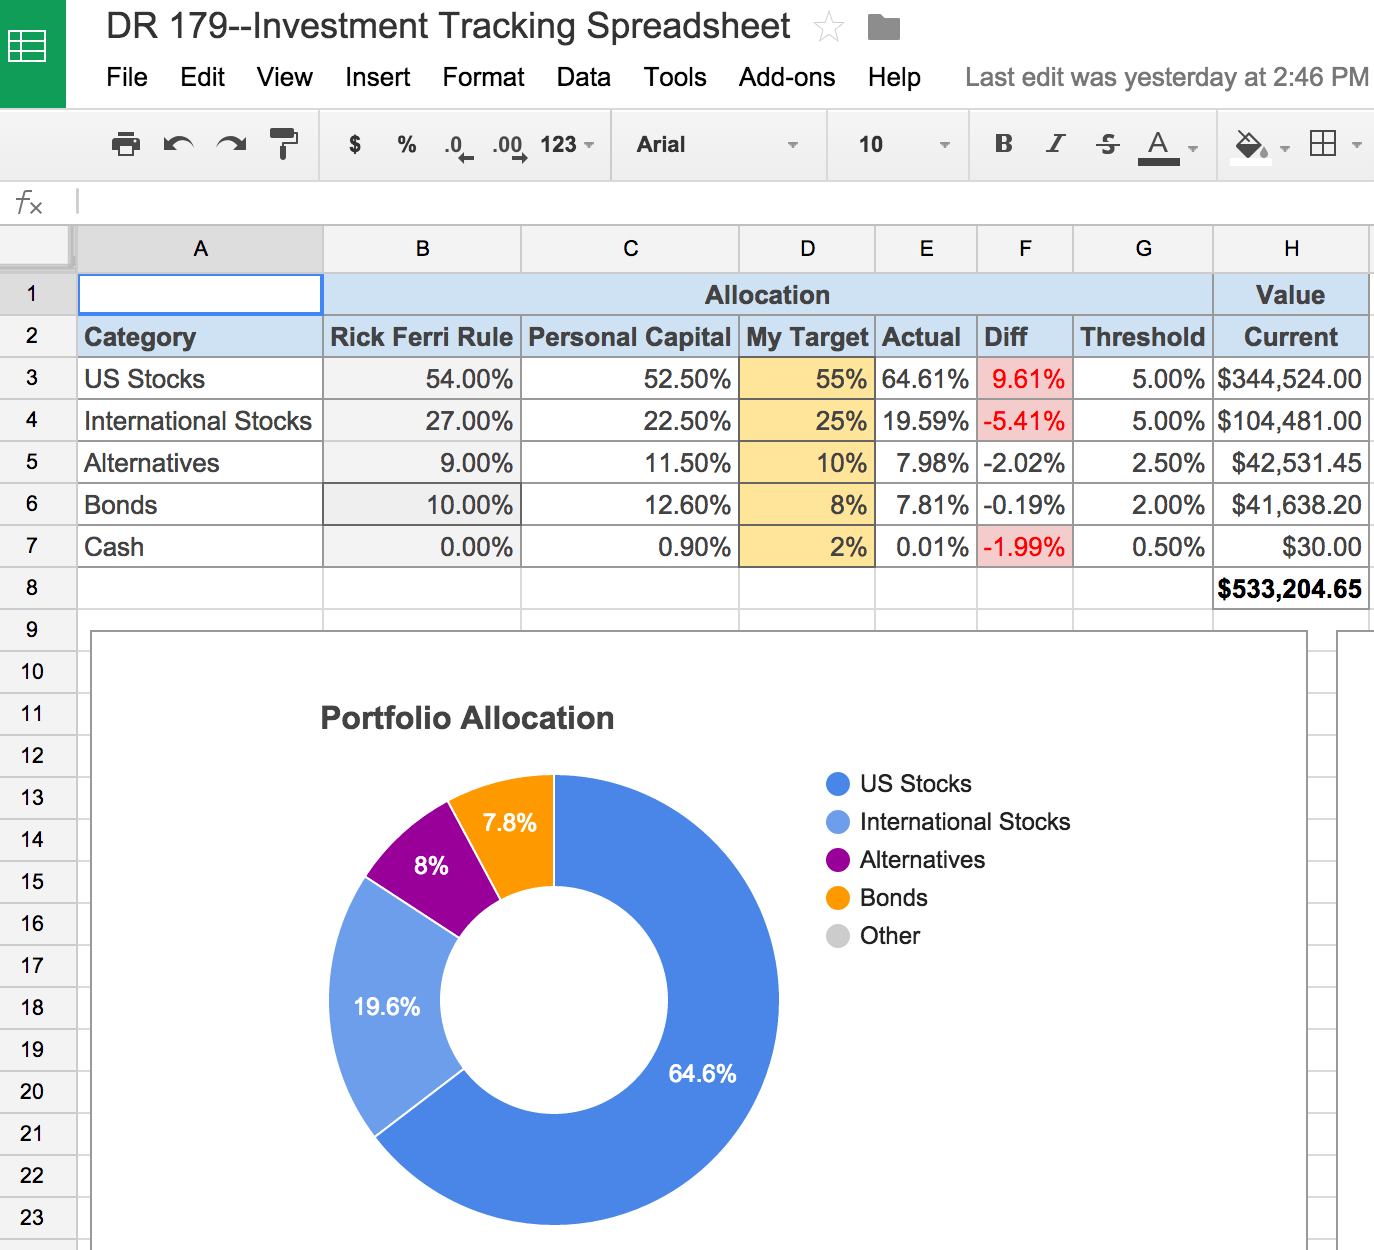 Share Tracking Excel Spreadsheet Regarding An Awesome And Free Investment Tracking Spreadsheet